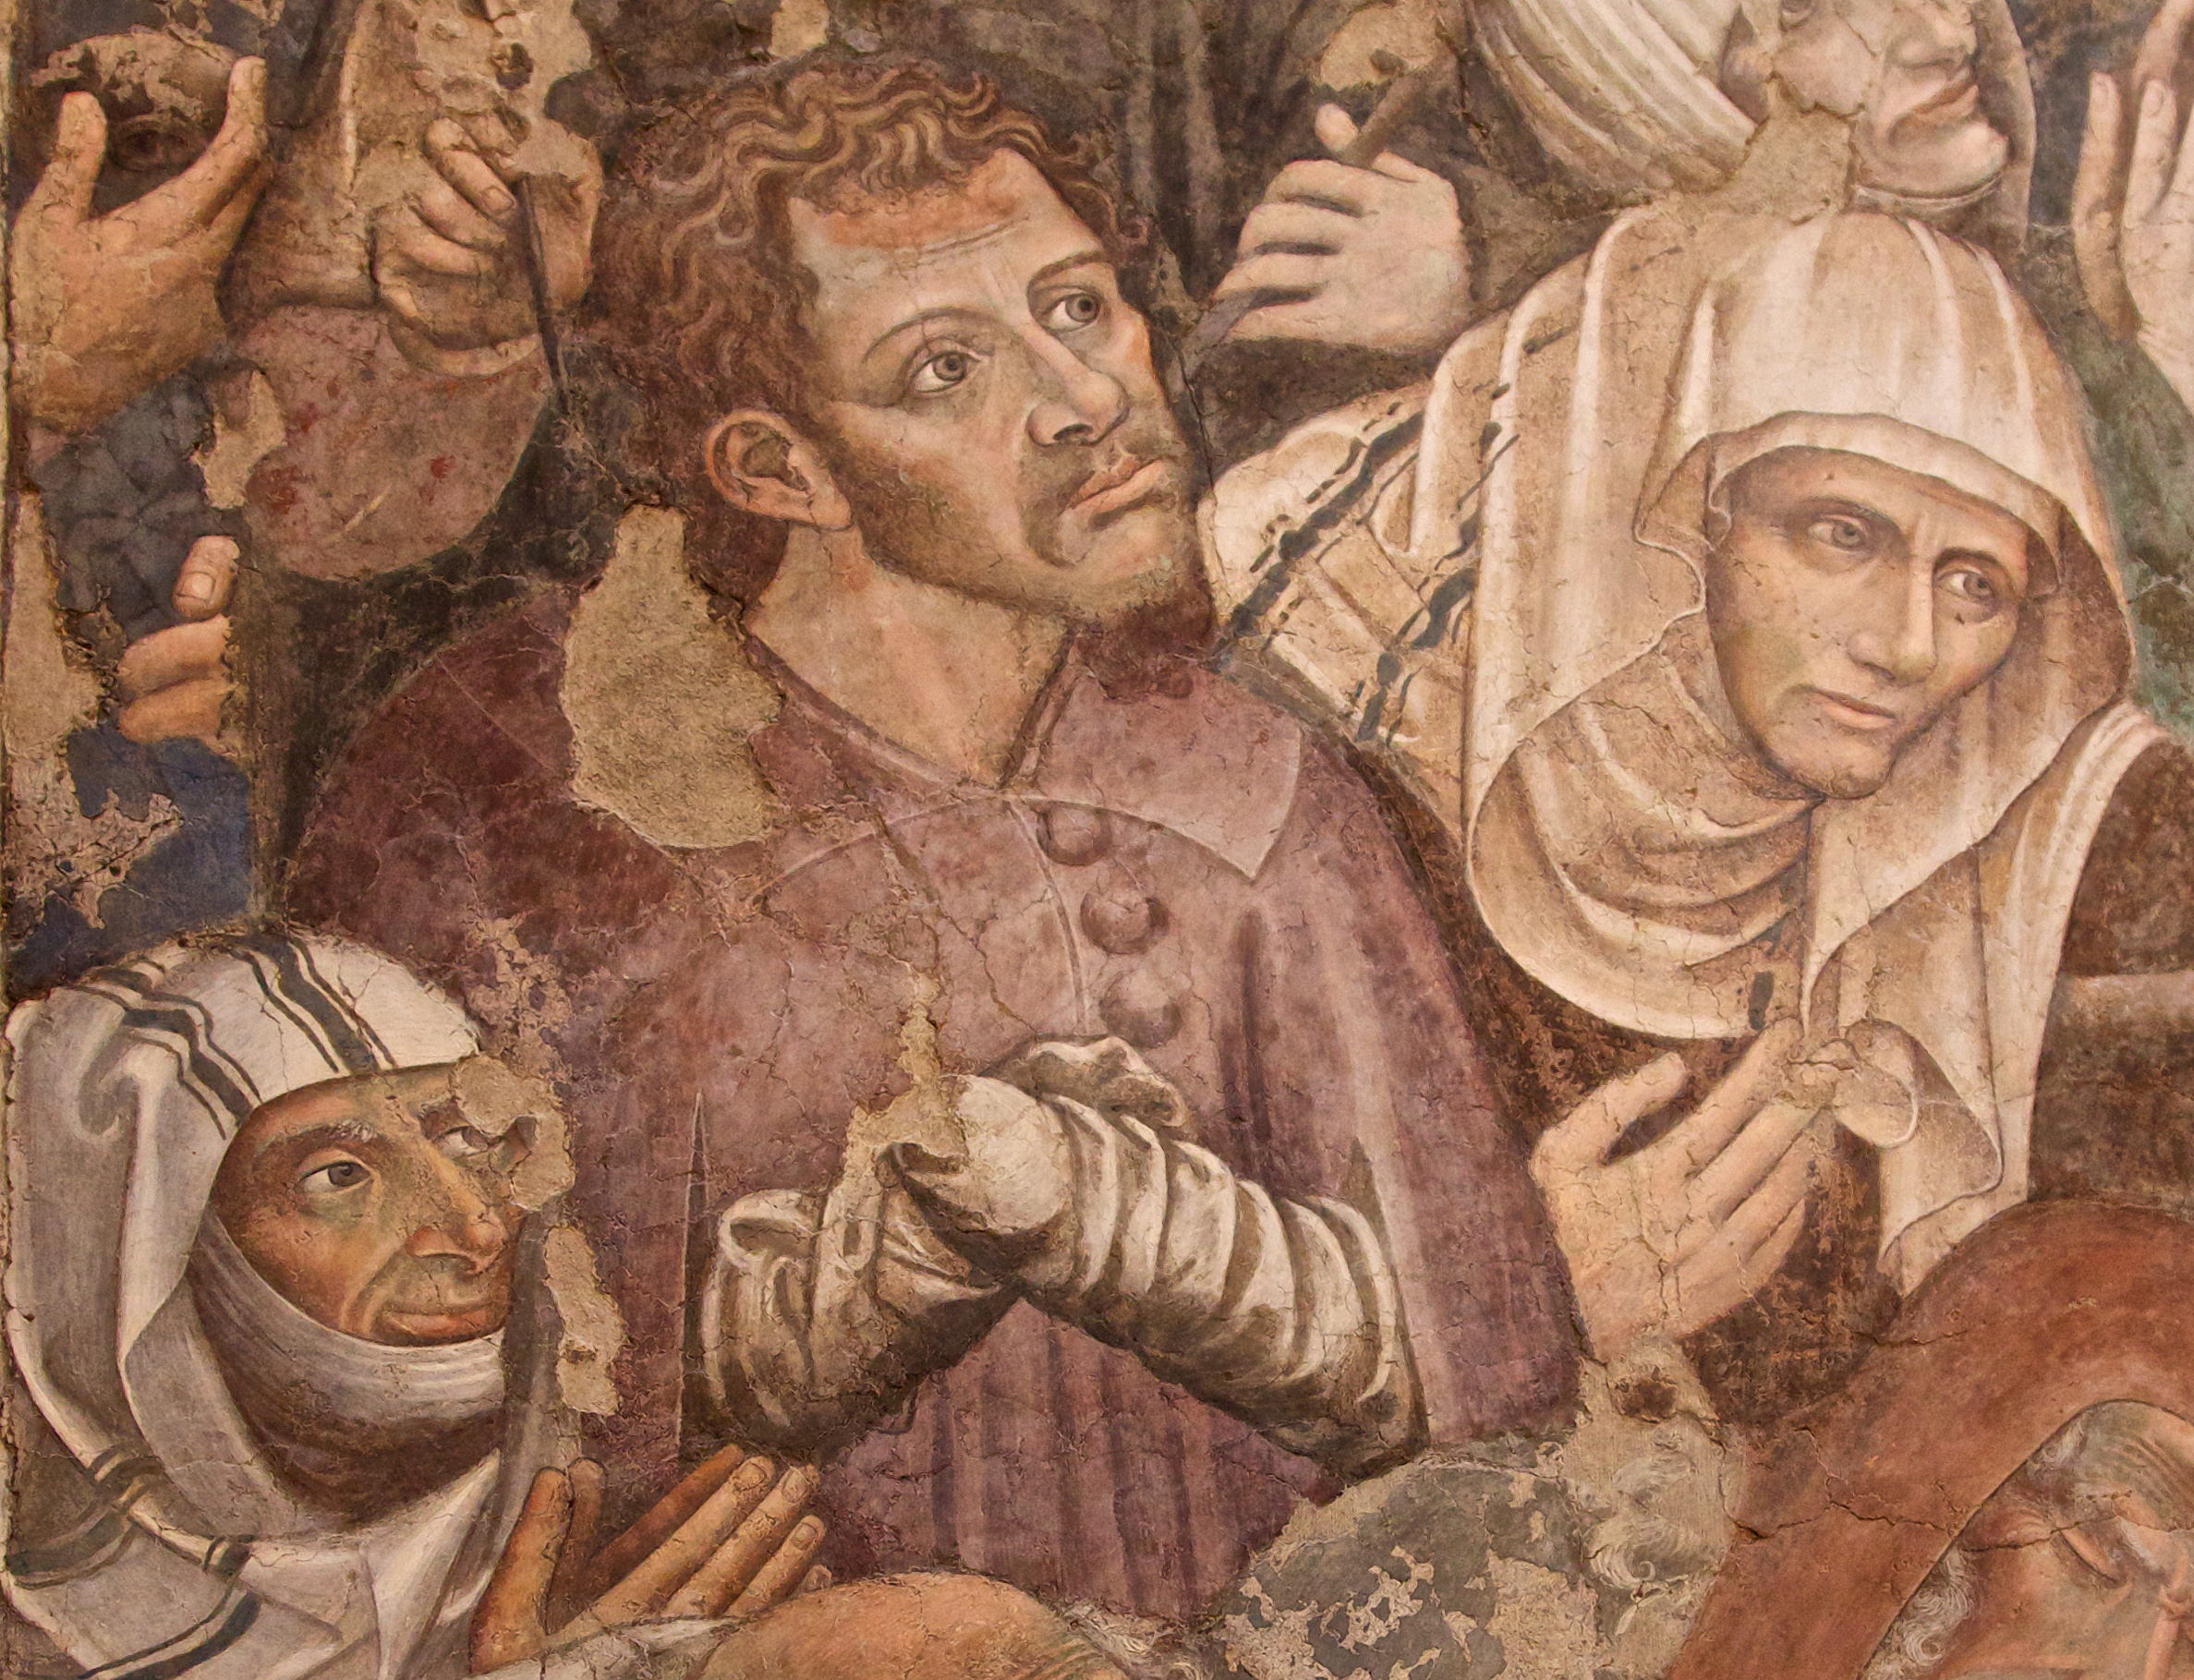 plague of the middle ages Christians in the middle ages may have been largely illiterate richard c leonard when a third of the world died during the black death, the greatest catastrophe in human history, how did christians respond mark galli warrior spirituality christian history institute.